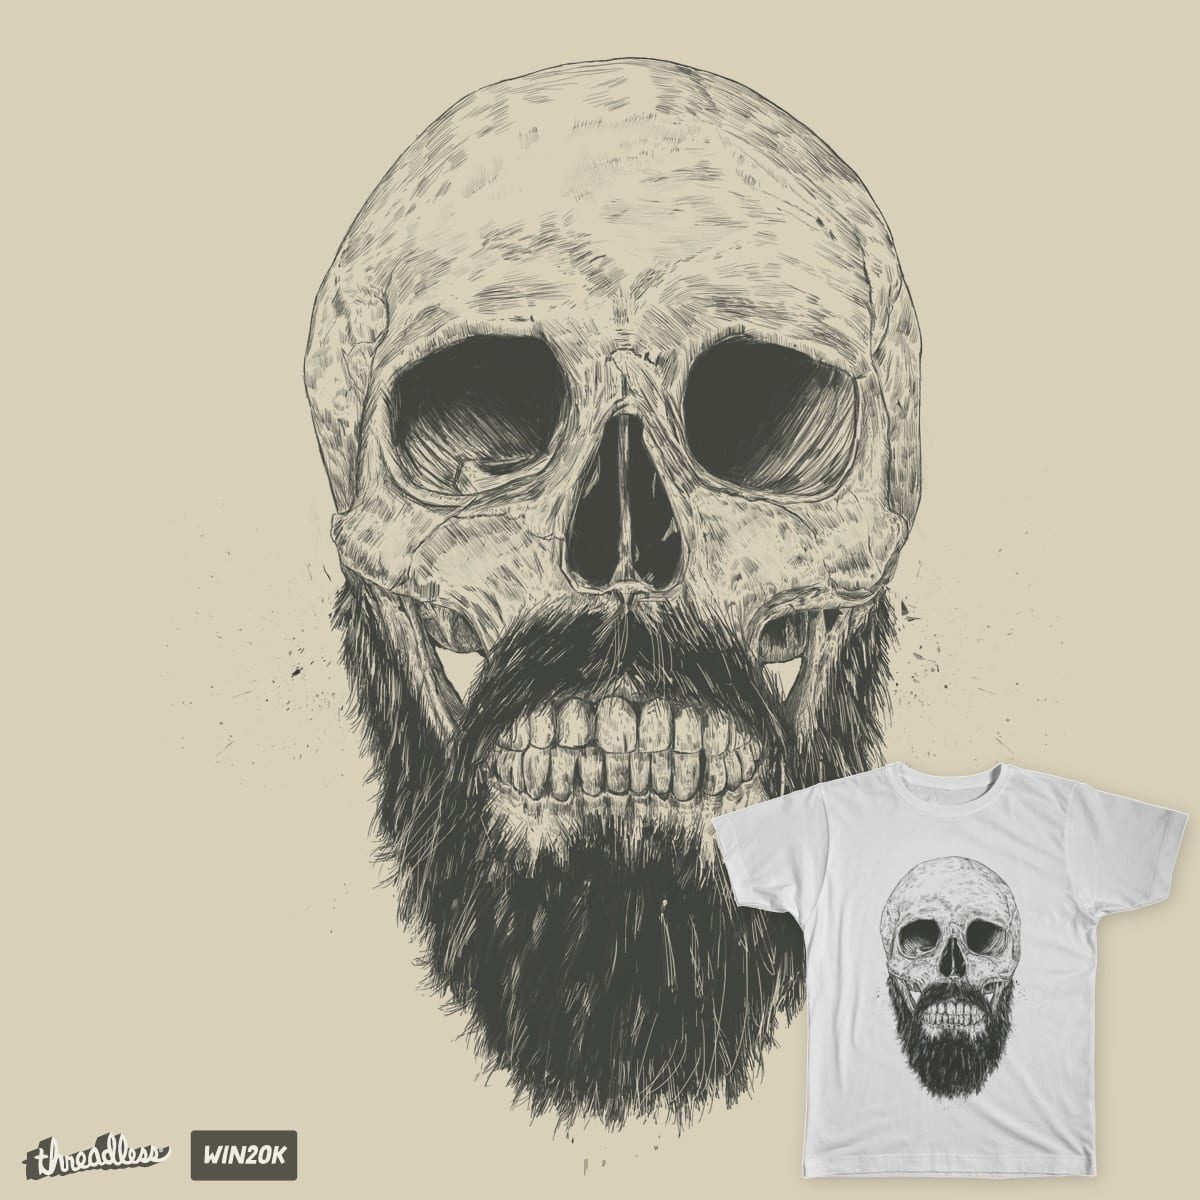 The beard is not dead by soltib on Threadless